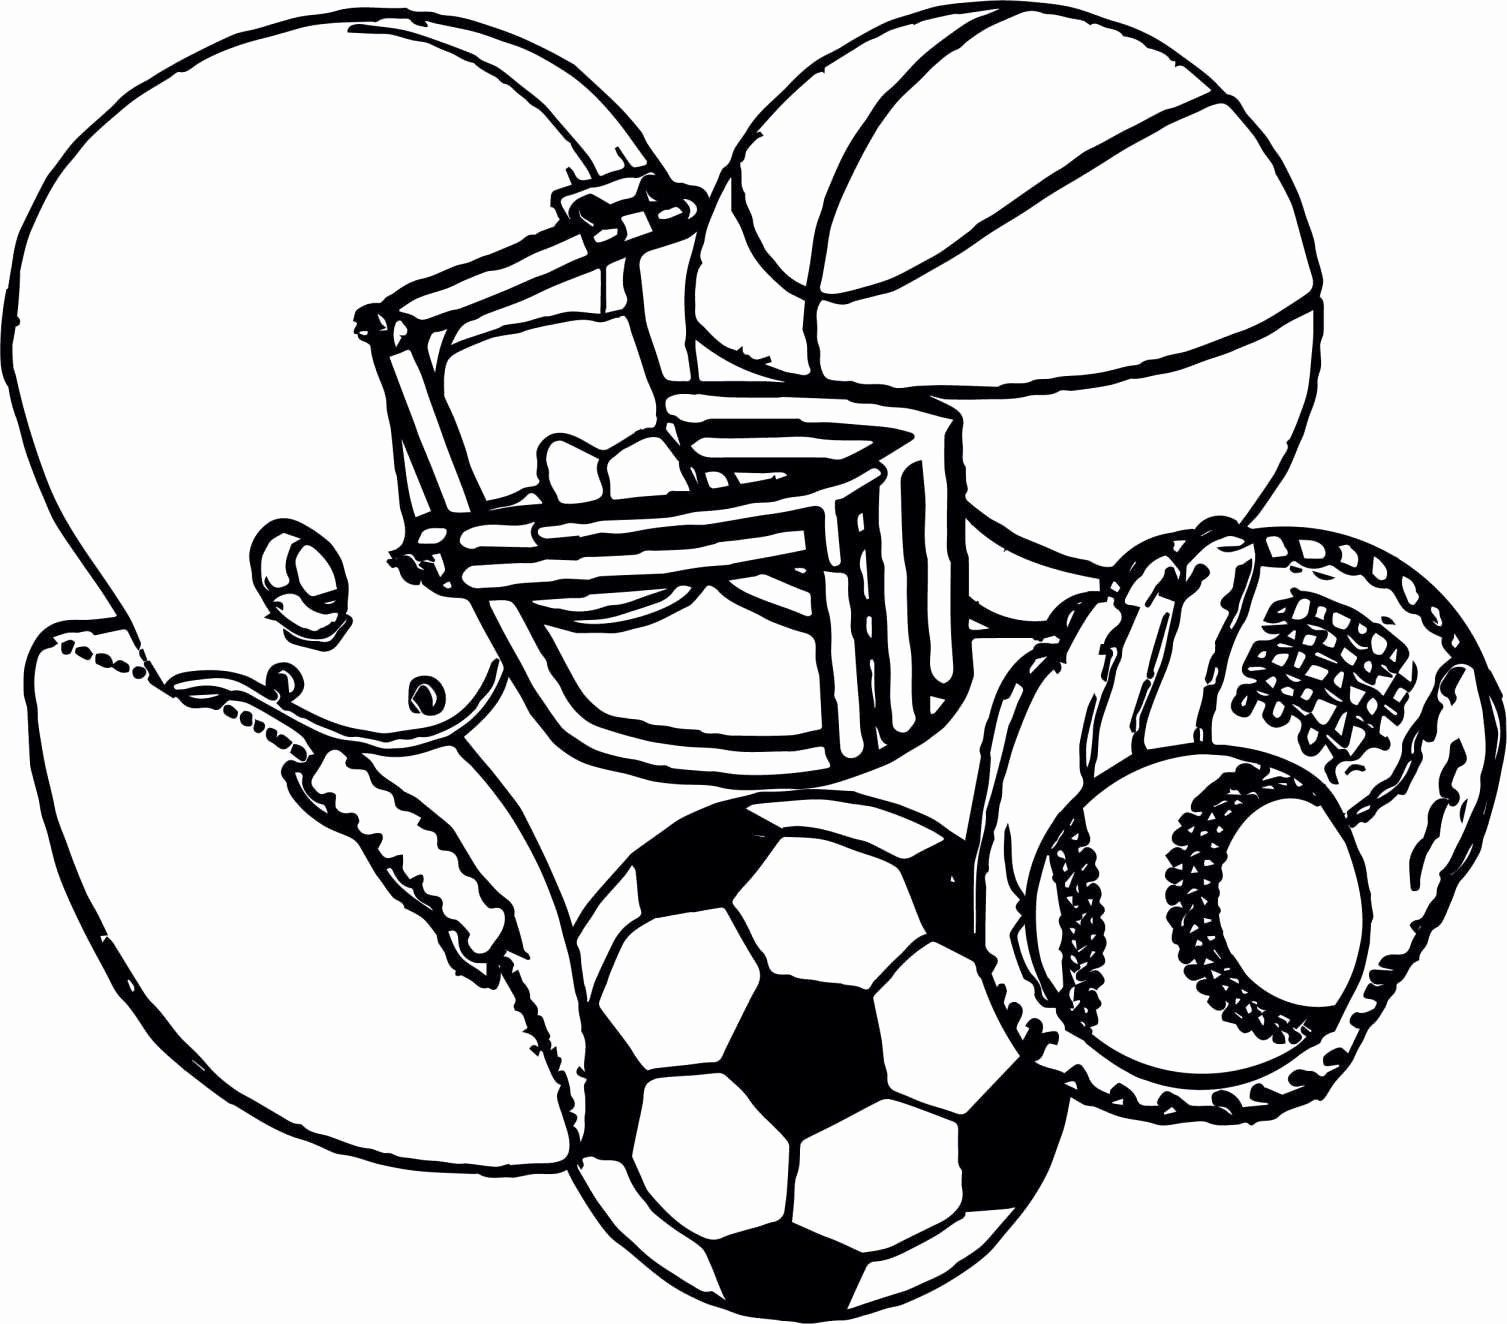 Pin By Miley Geraldine On Cartes 17 Sports Coloring Pages Football Coloring Pages Baseball Coloring Pages